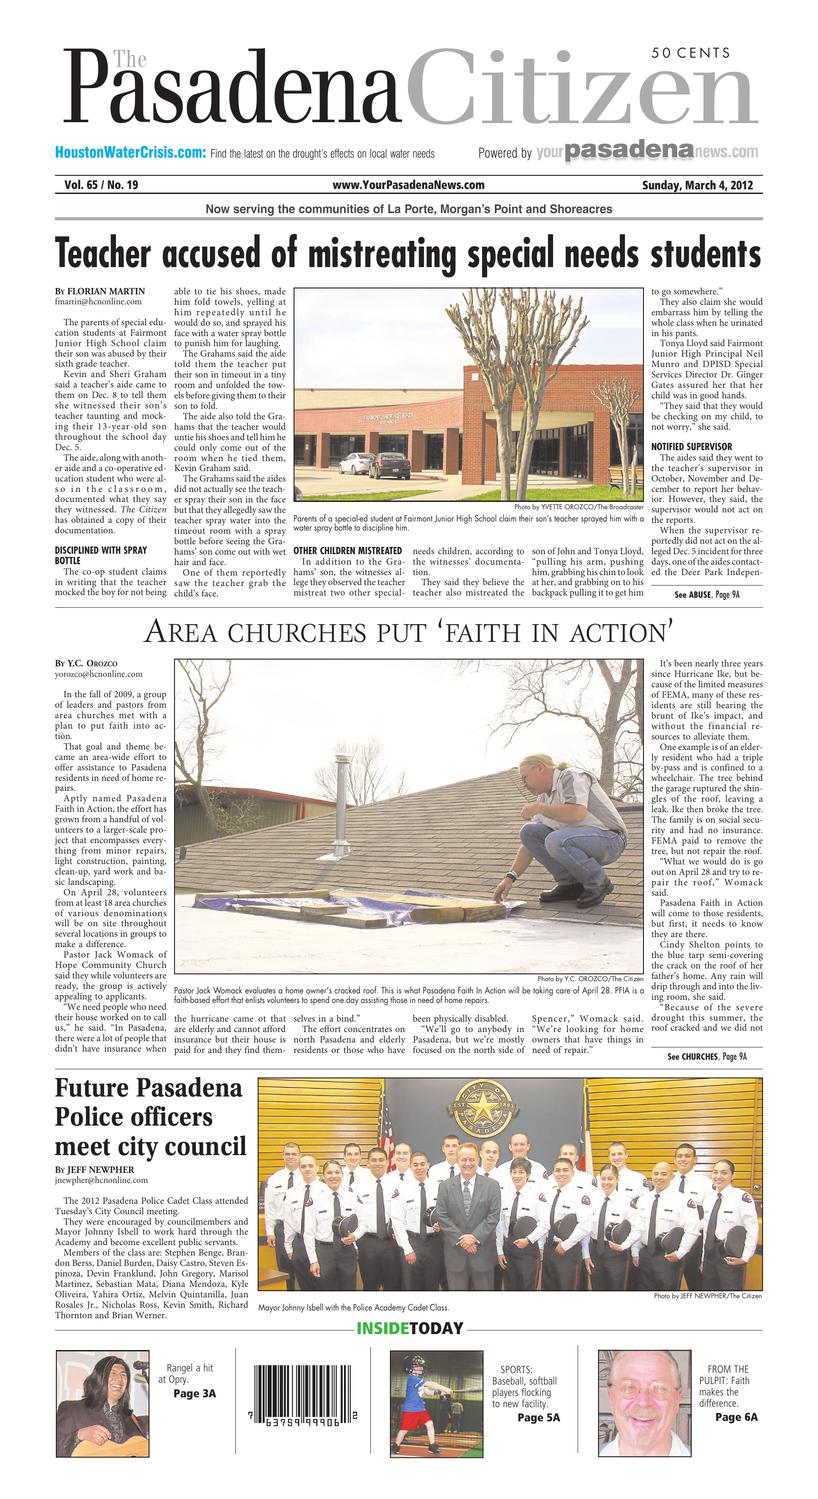 The Pasadena Citizen, Gen Ex, March 4, 2012 by Texas Press